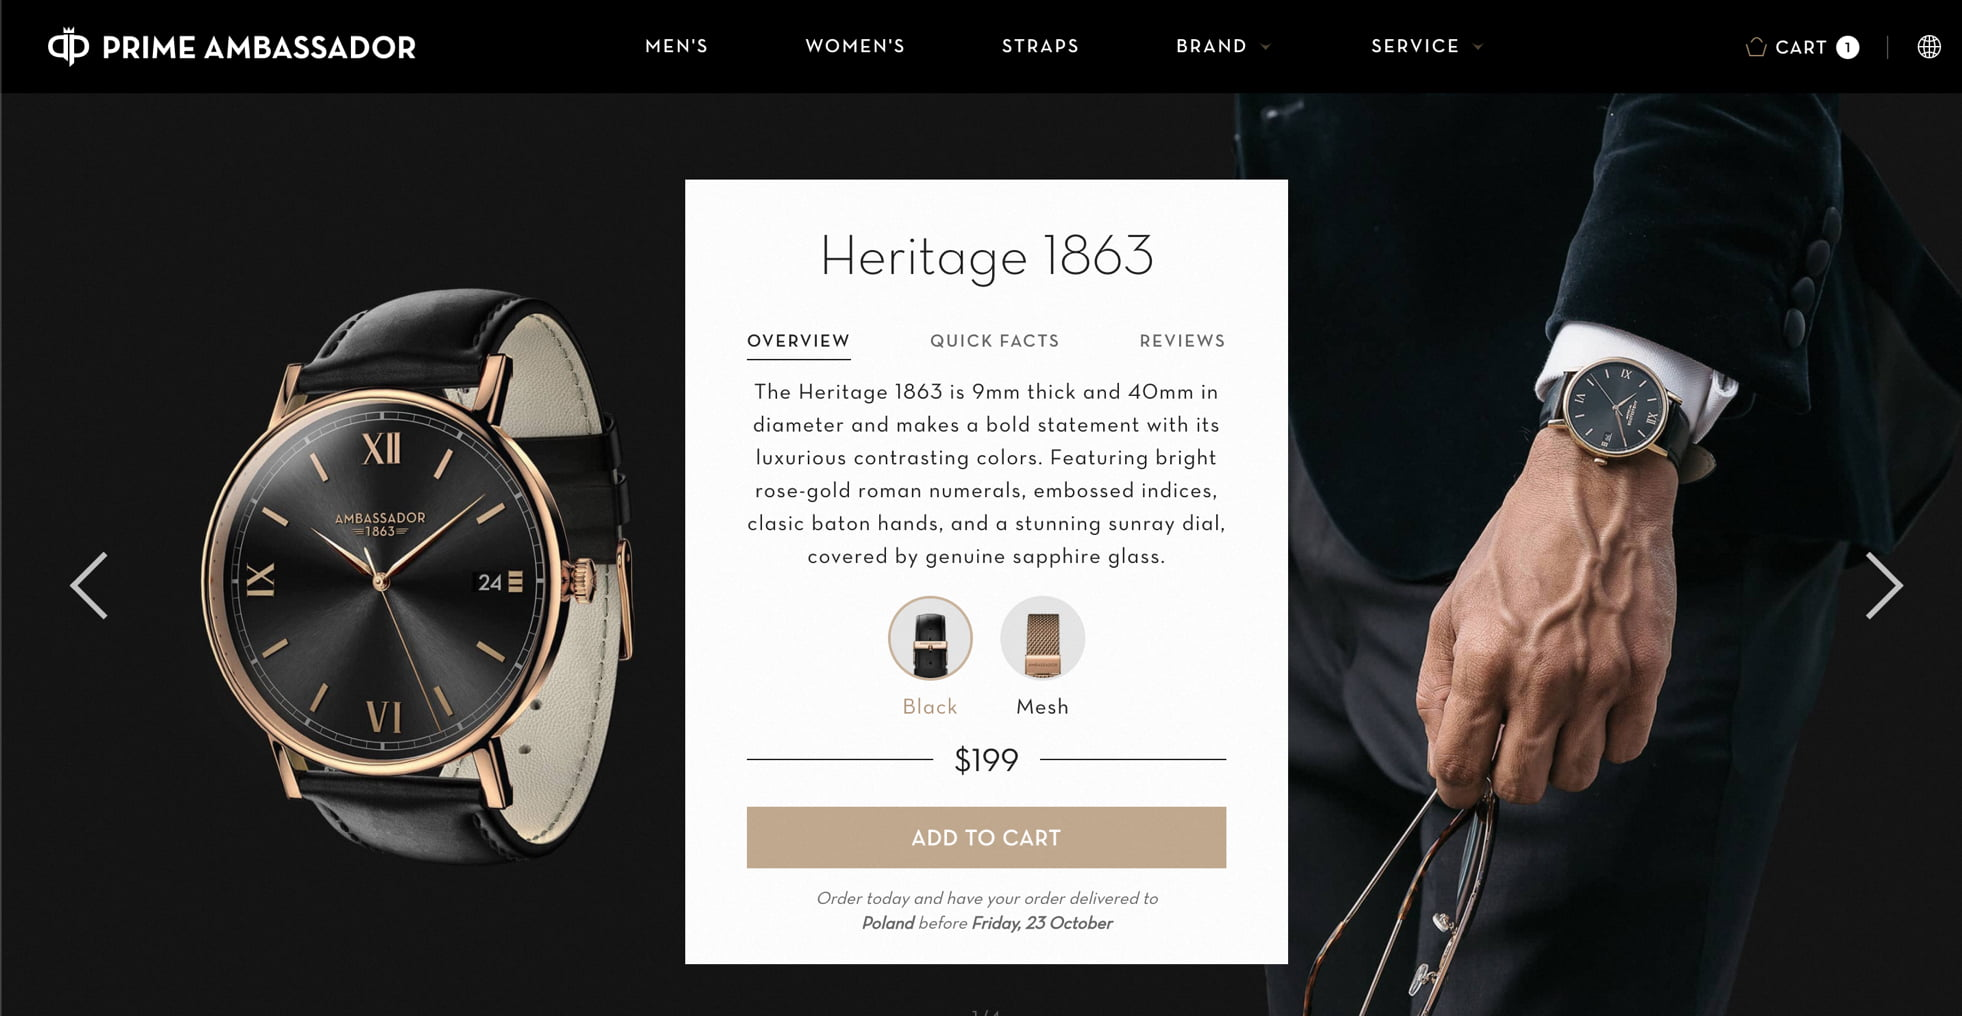 product page in web design